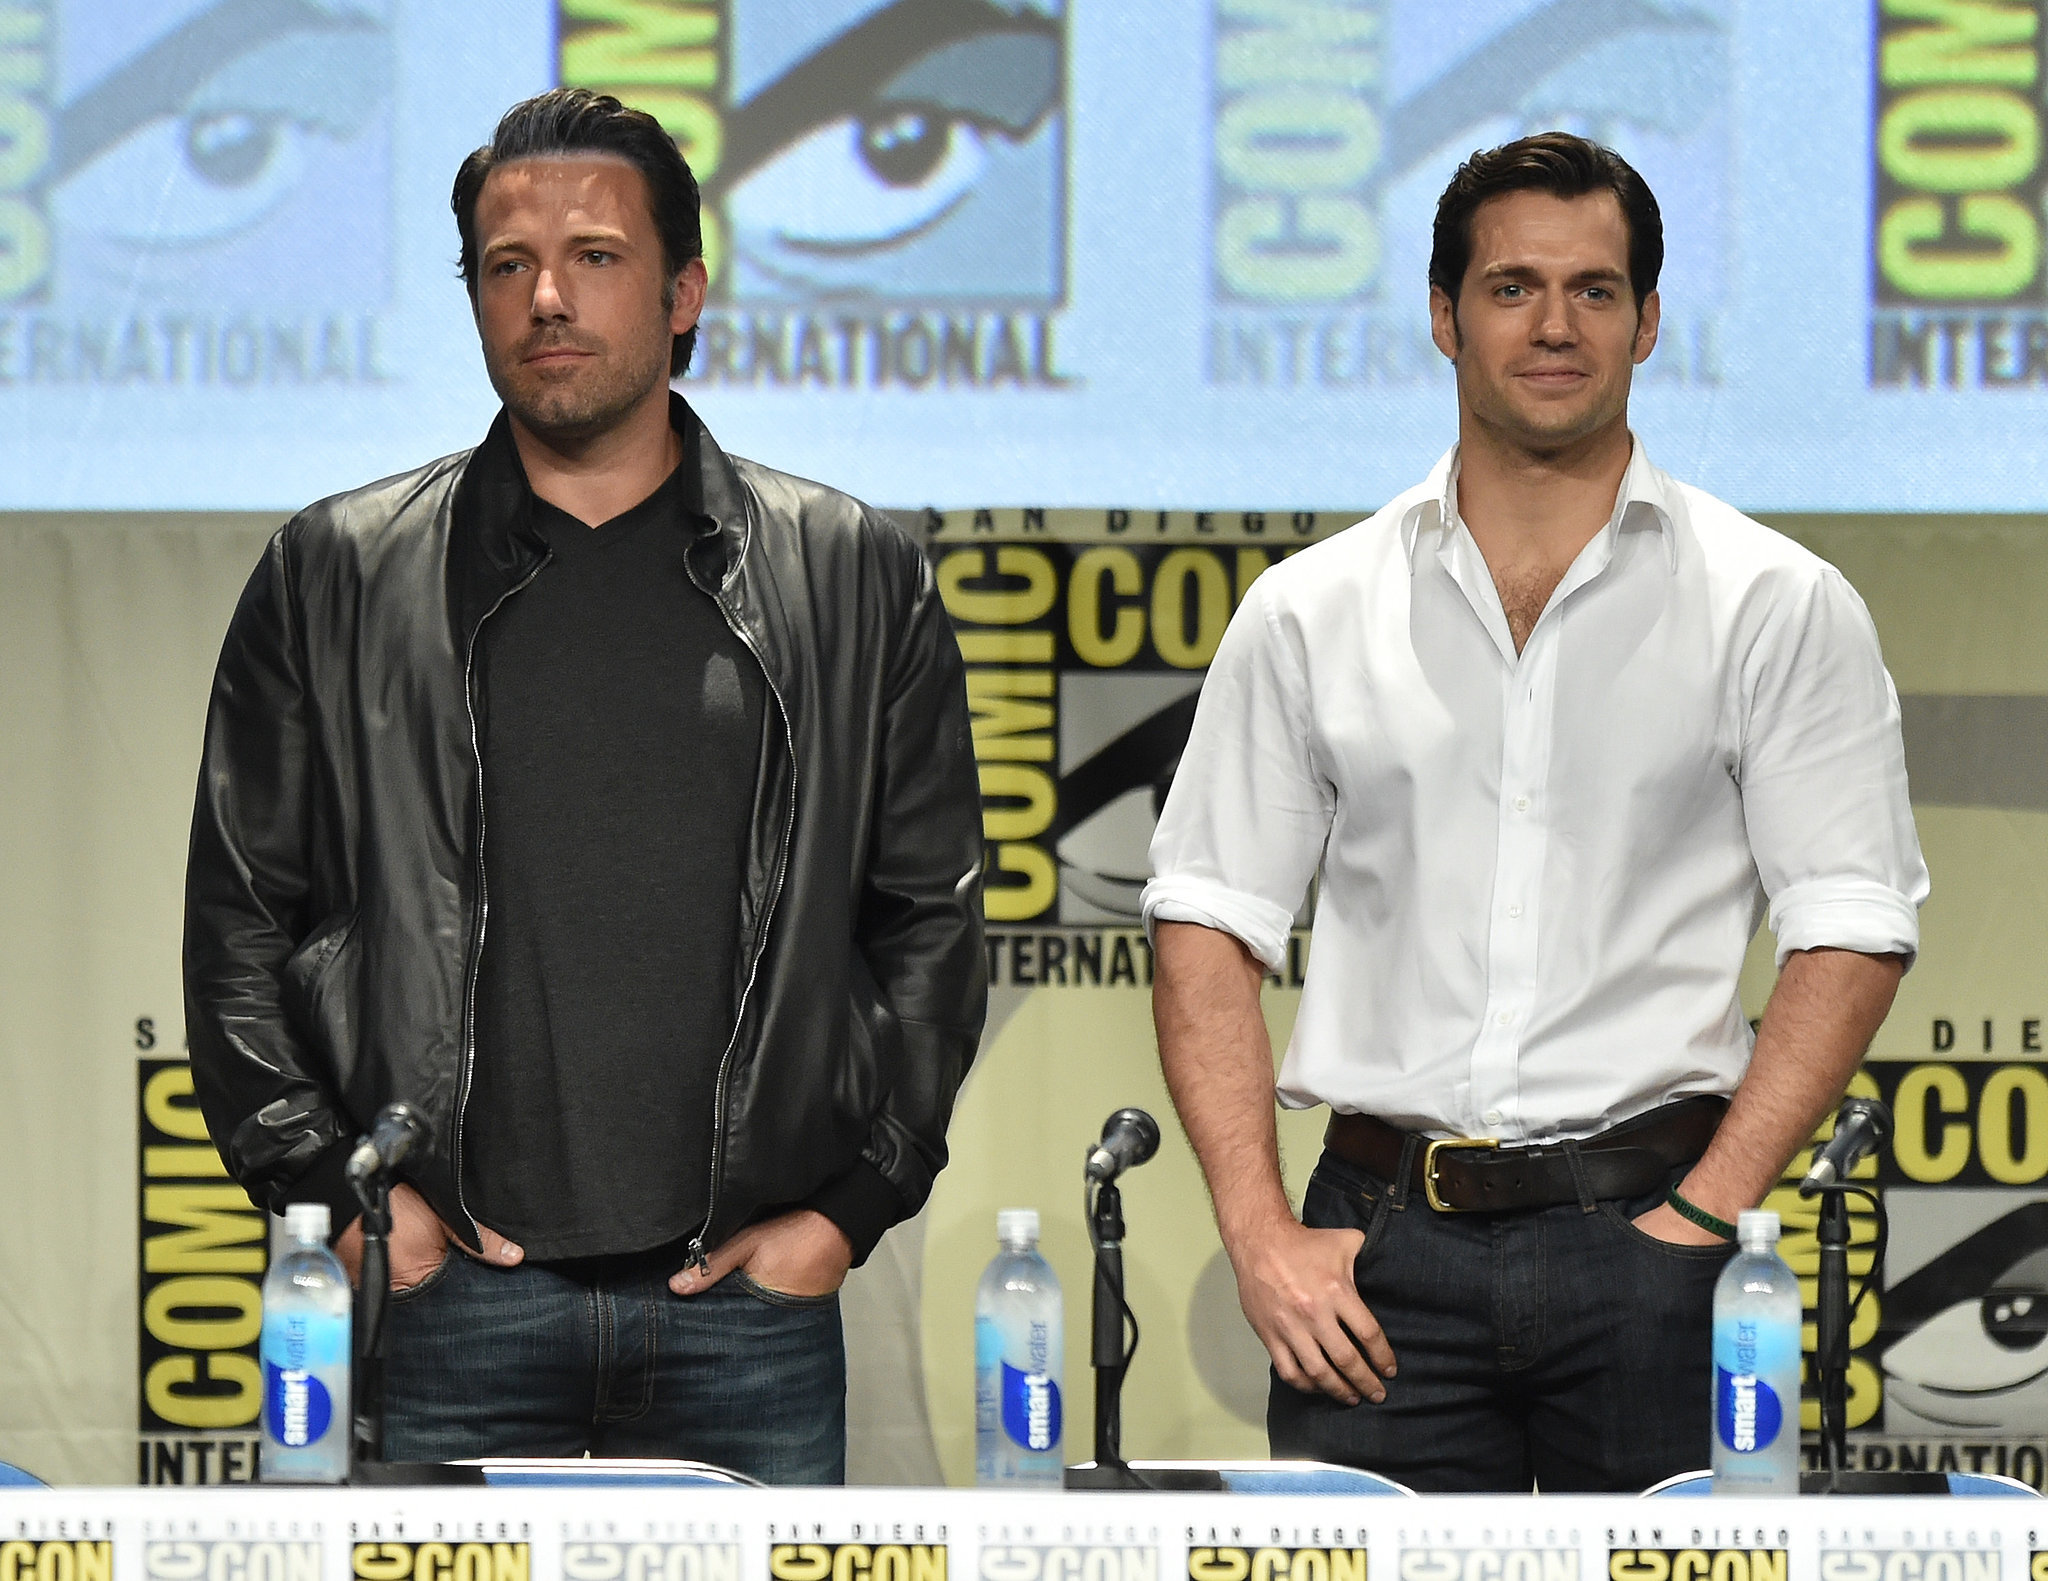 Then Batman and Superman Tried to Hide Them